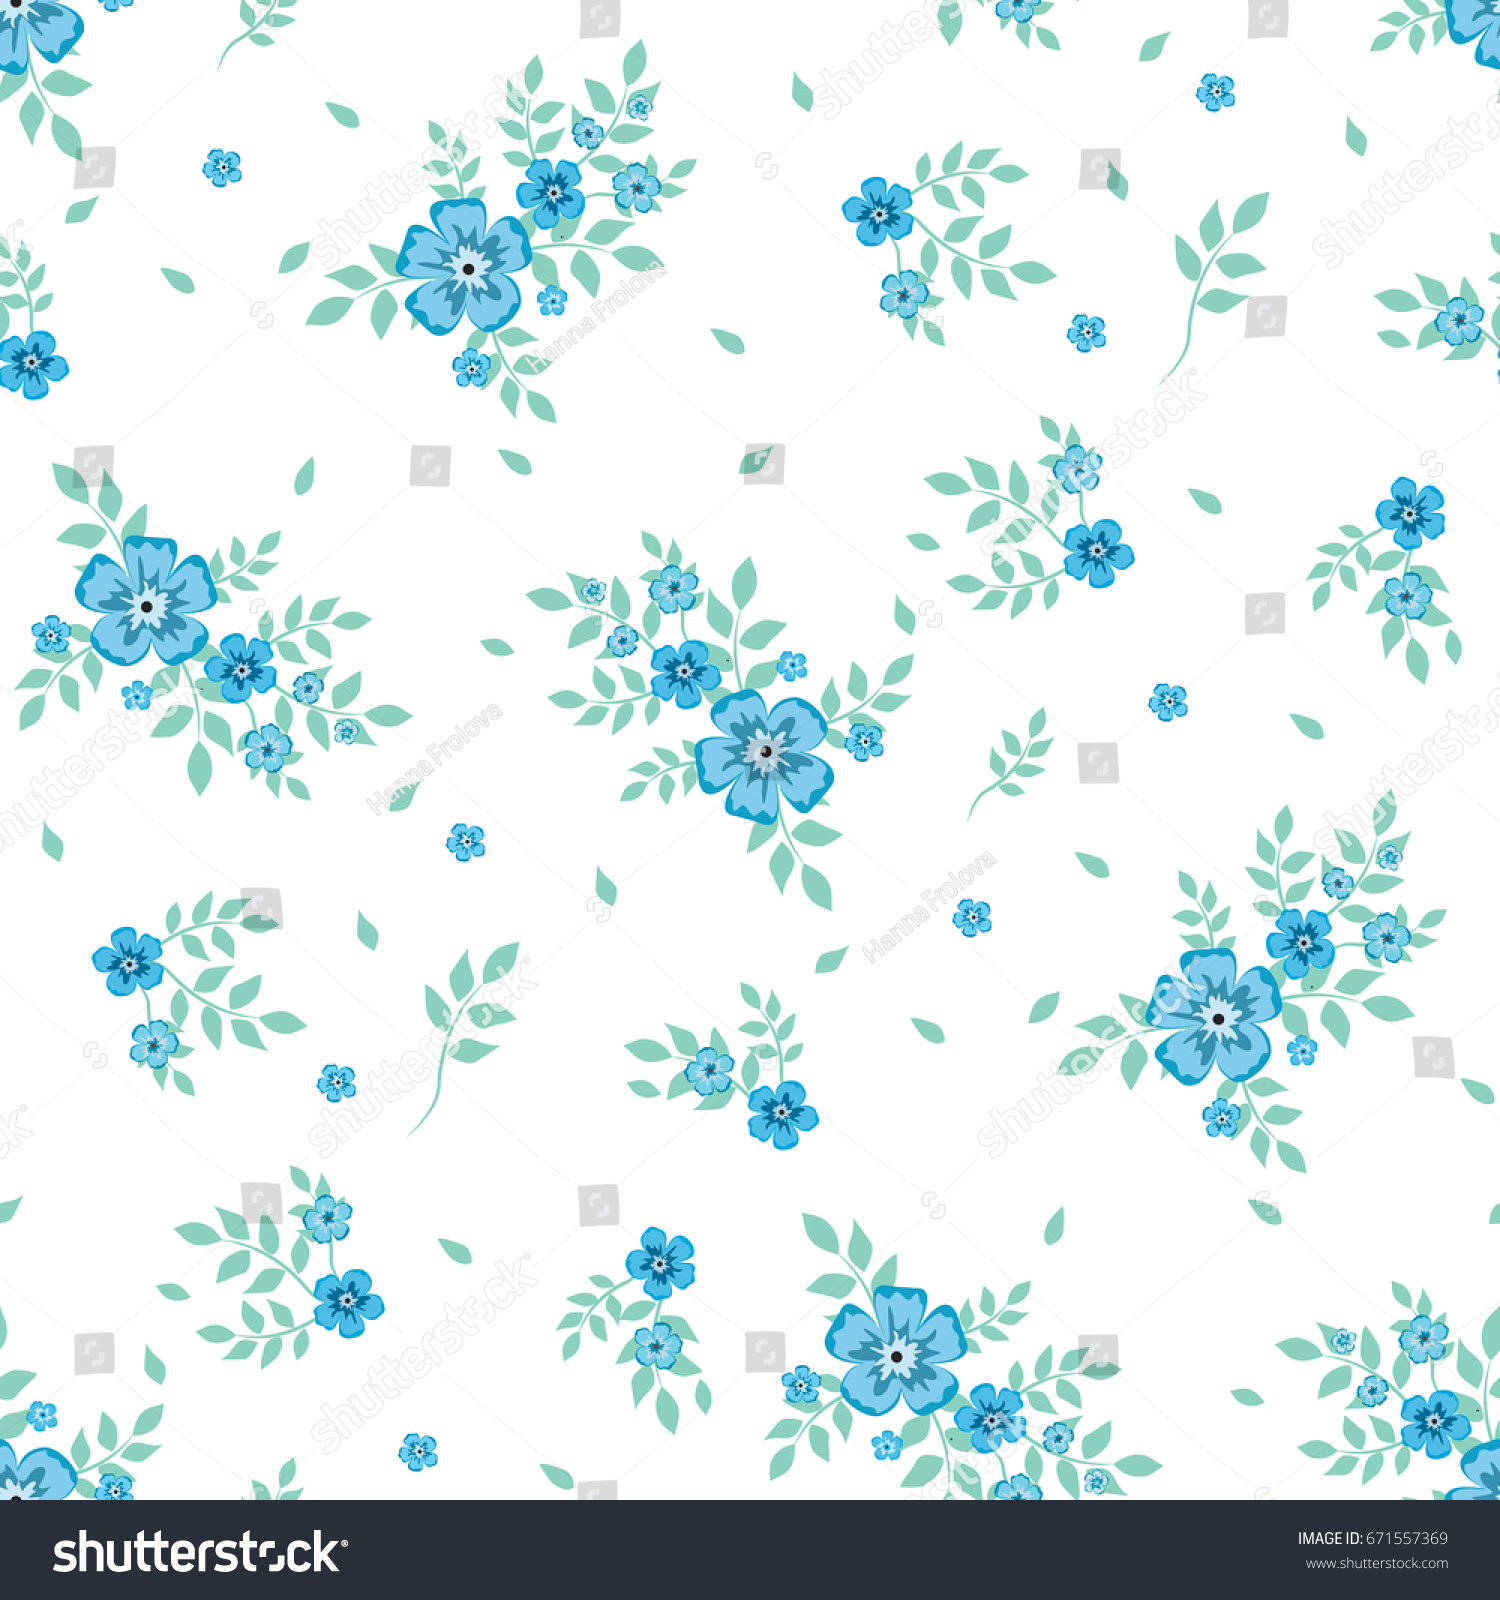 Seamless floral pattern background small blue stock vector royalty seamless floral pattern background in small blue flowers on a white background for textiles mightylinksfo